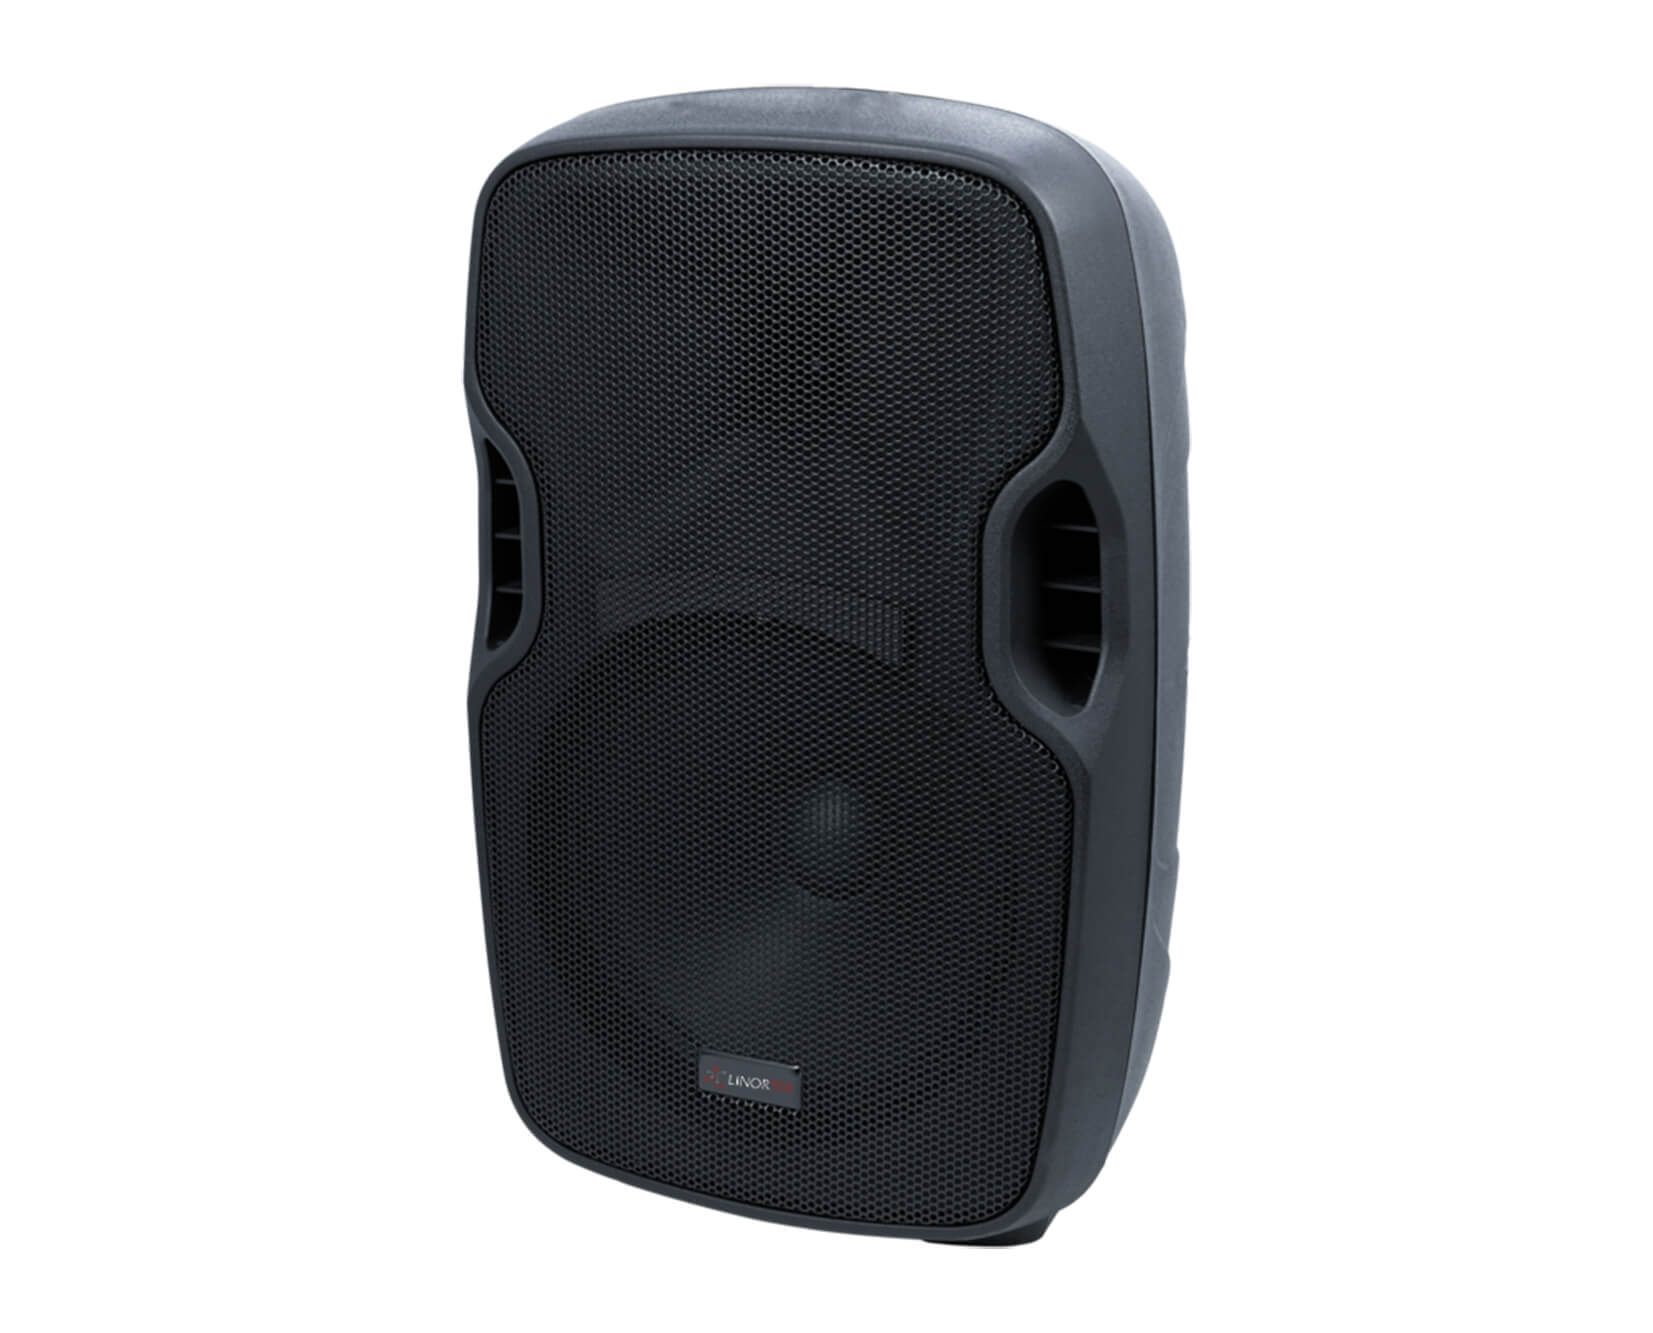 Netbell-NTG-08 All-In-One LoudSpeaker with Built-in Tone Generator and Amplifier